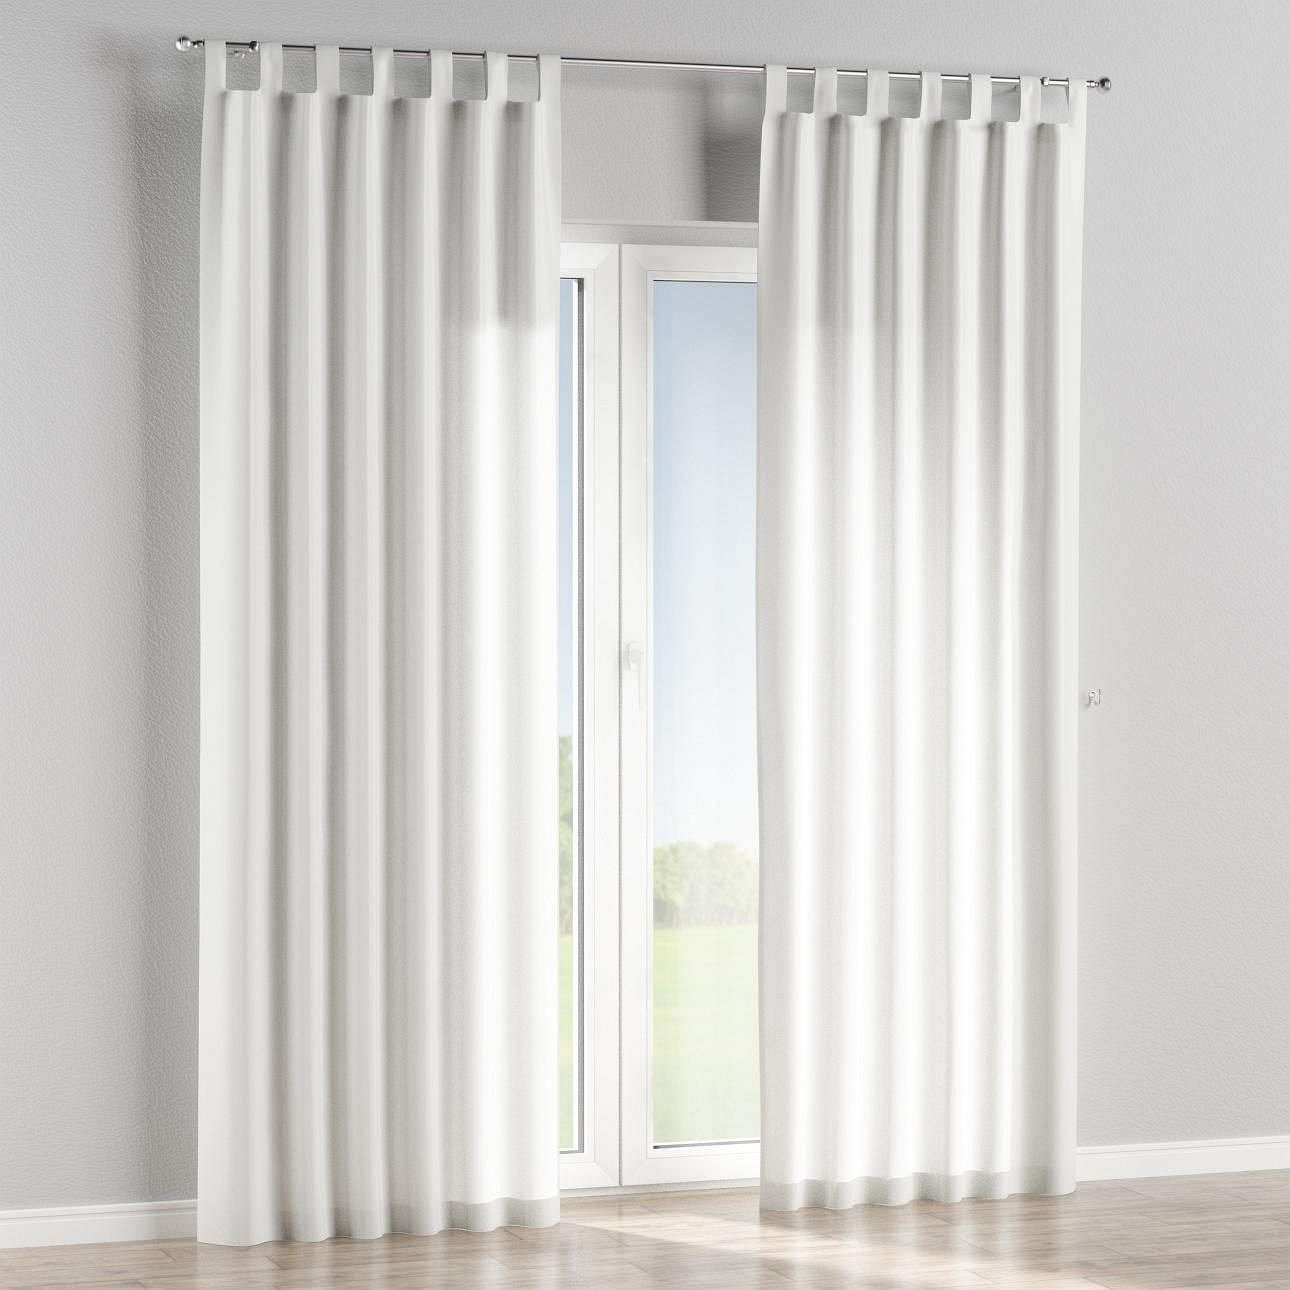 Tab top curtains in collection Cardiff, fabric: 136-20